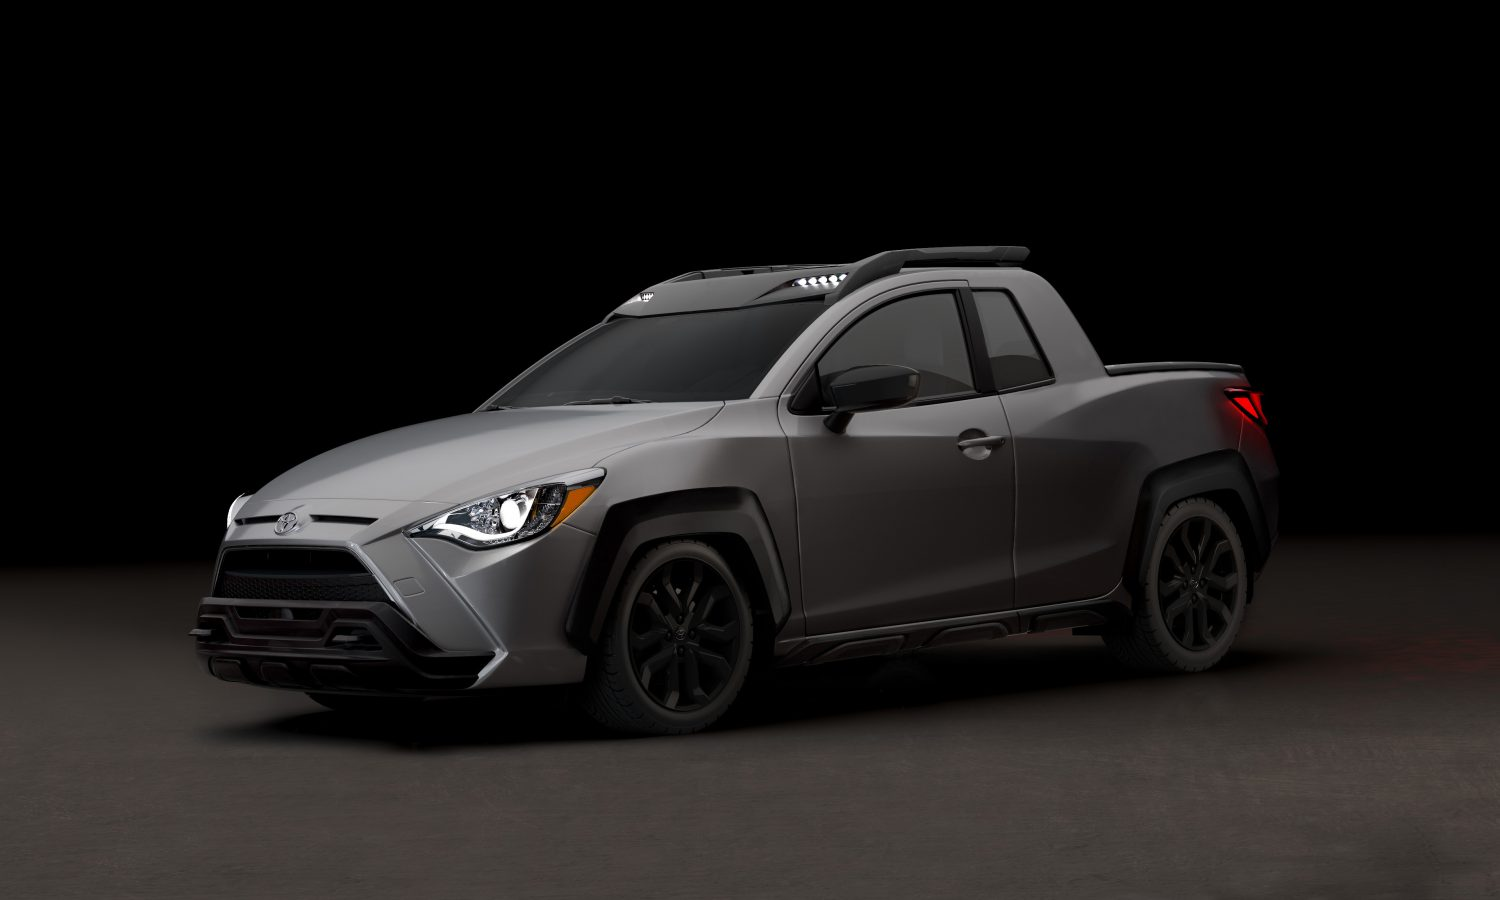 All-New 2020 Toyota Yaris Adventure: Answering the Question